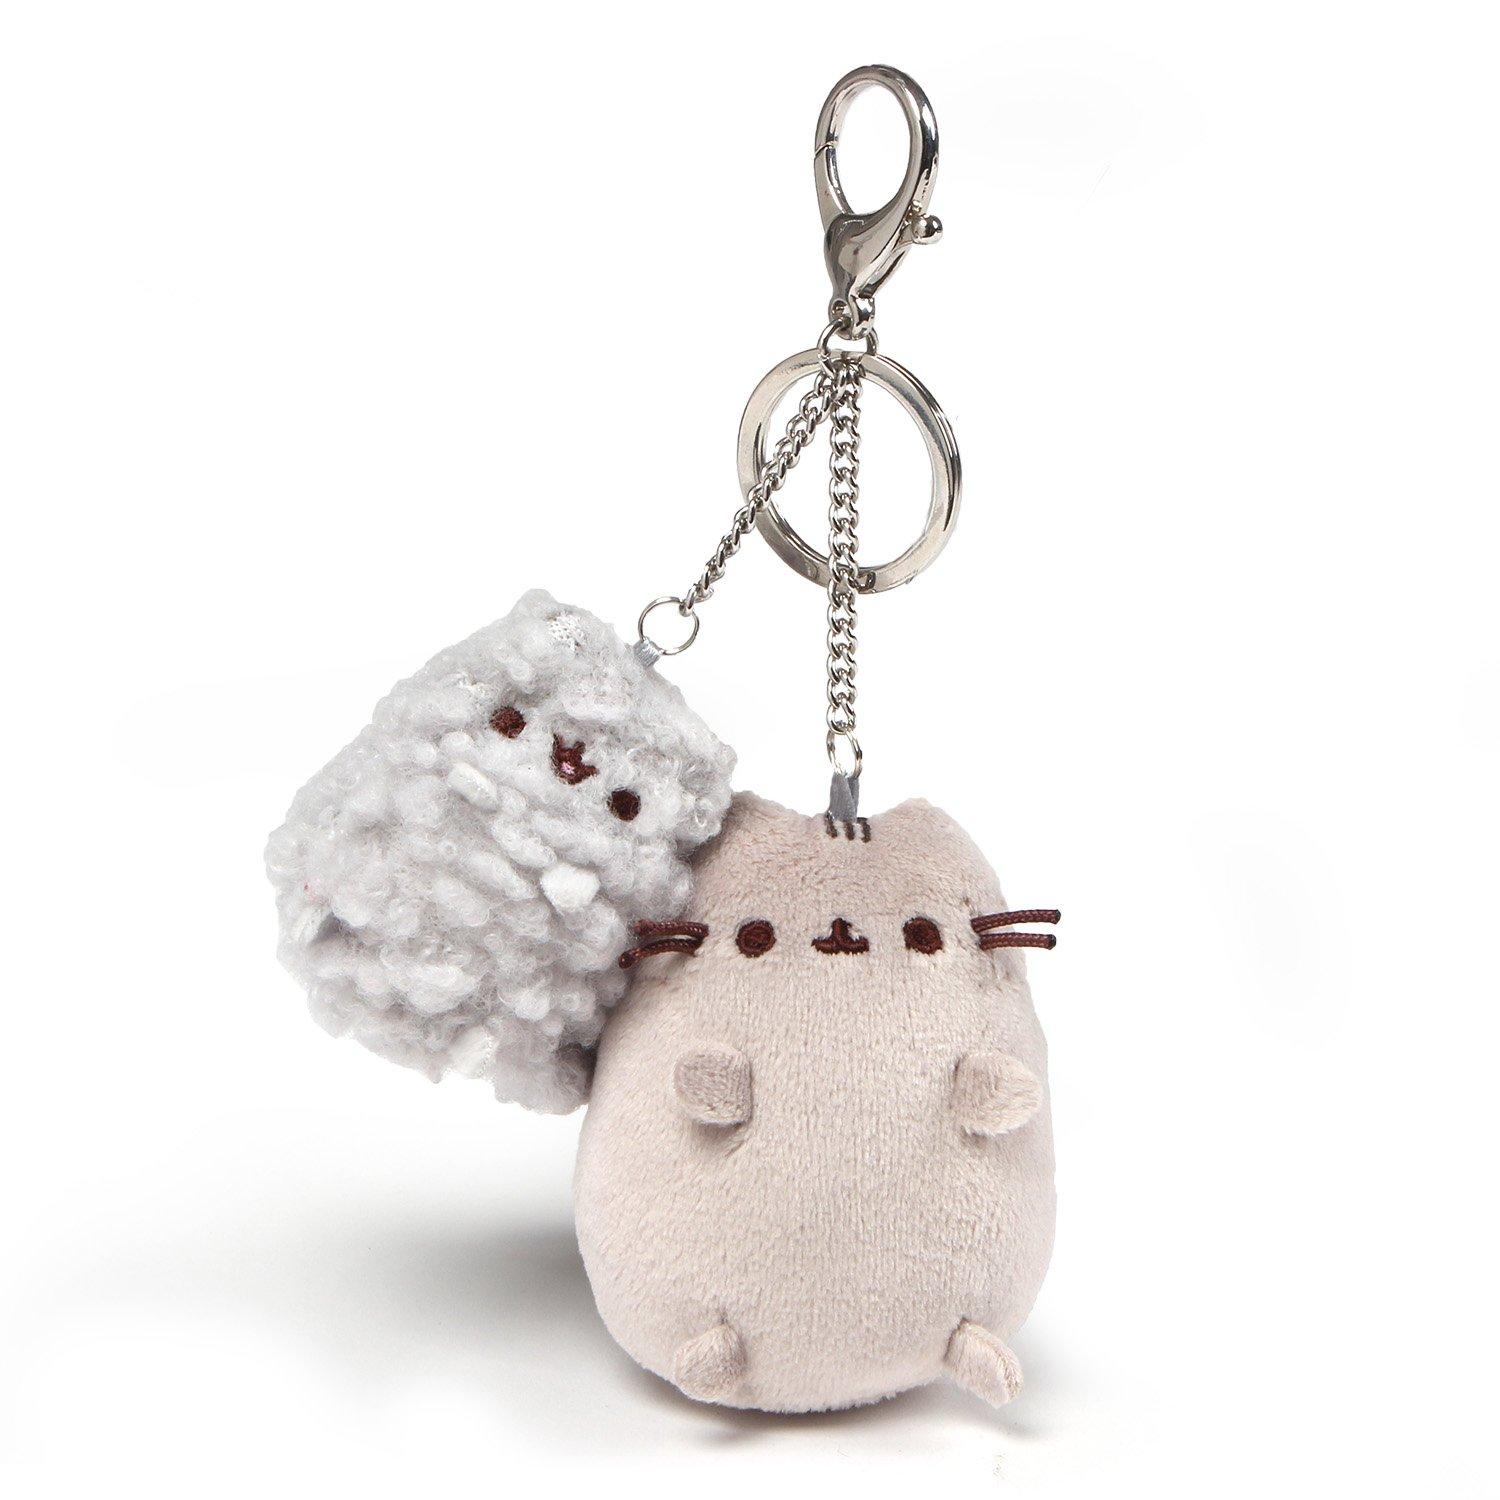 GUND Pusheen and Stormy Plush Deluxe Keychain Clip, Gray, 4.5